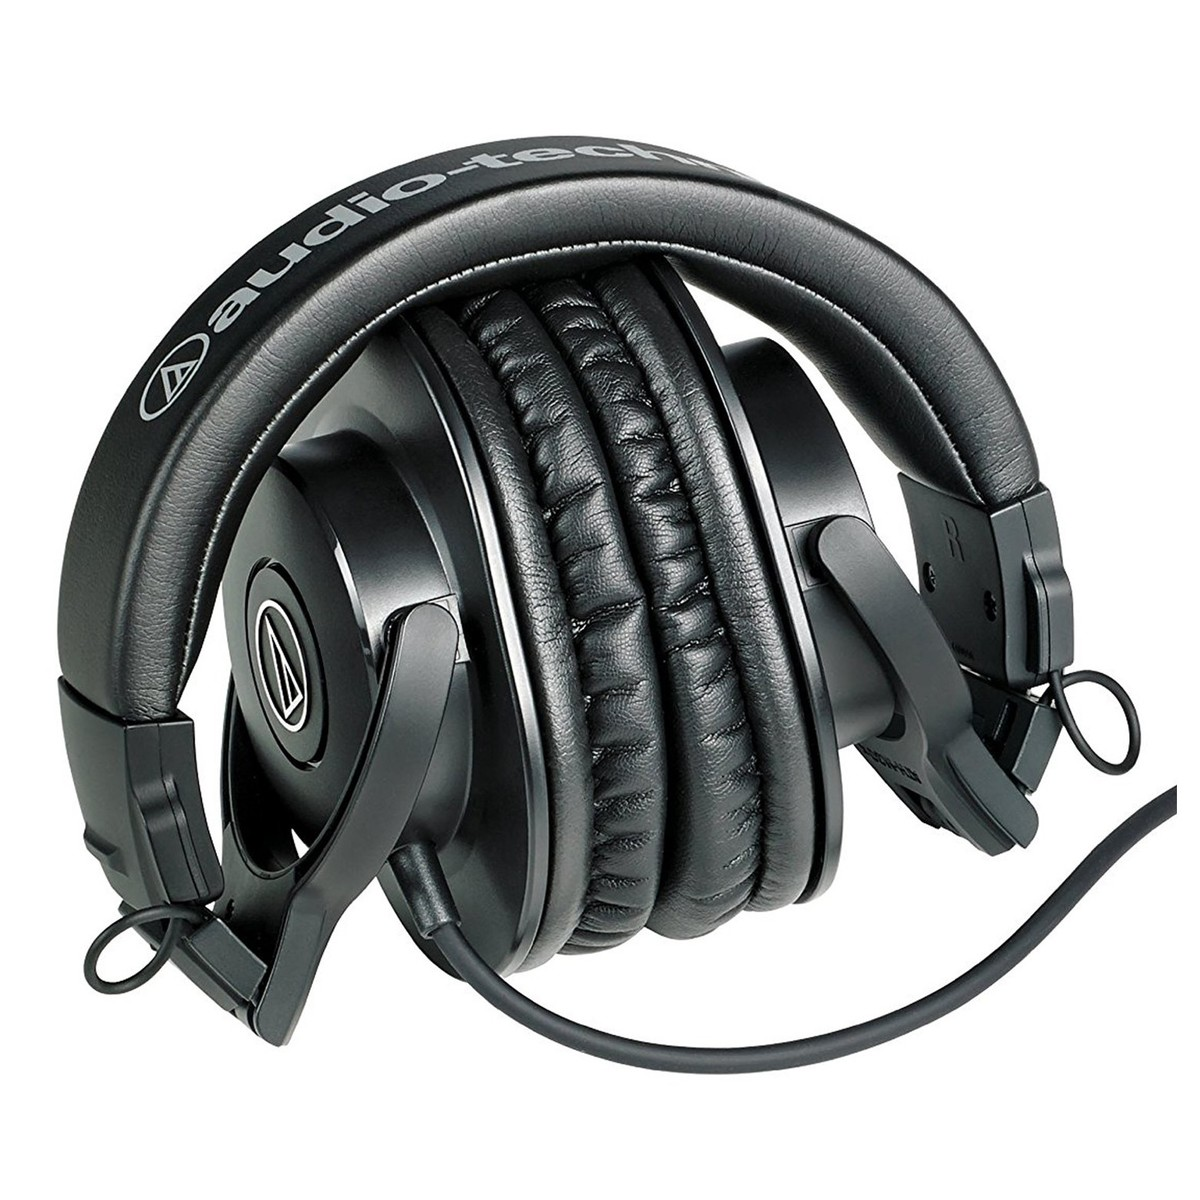 audio technica ath m30x professional monitor headphones at gear4music. Black Bedroom Furniture Sets. Home Design Ideas